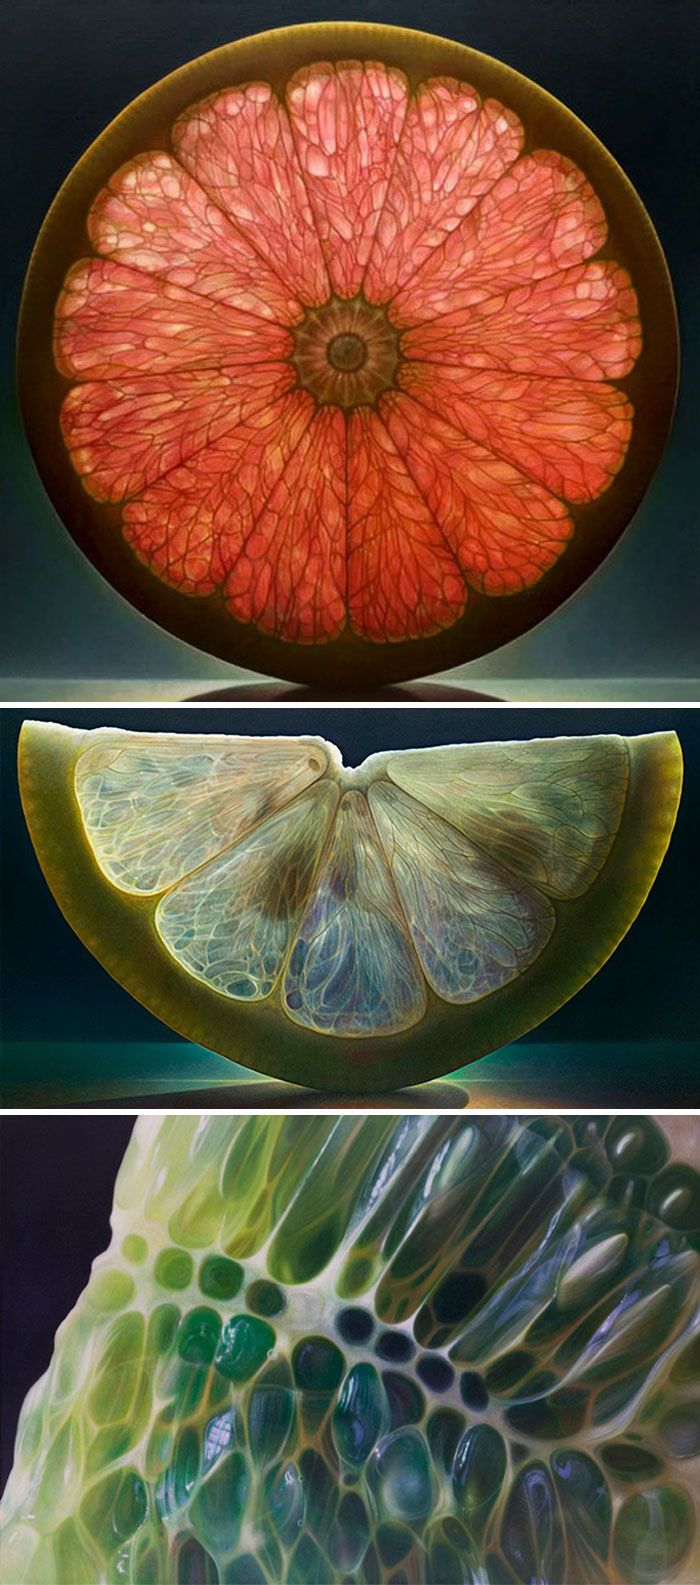 15+ Incredibly Realistic Artworks That Are Hard to Believe Are Not Photographs